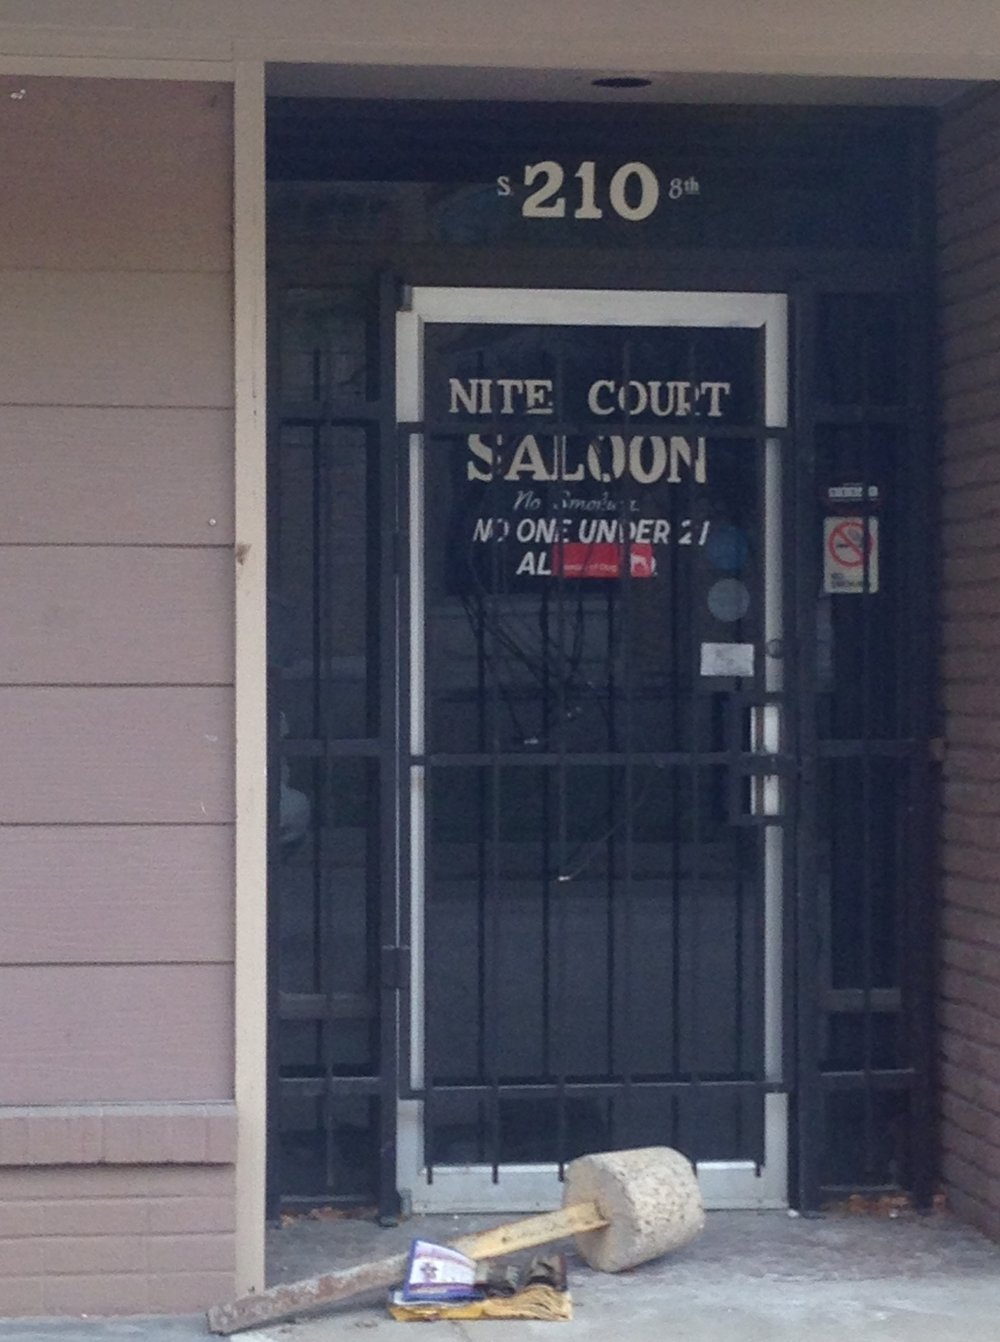 Nite Court Saloon, surely the hidden gem of downtown Waco.  Adding this to my list for next time I visit.